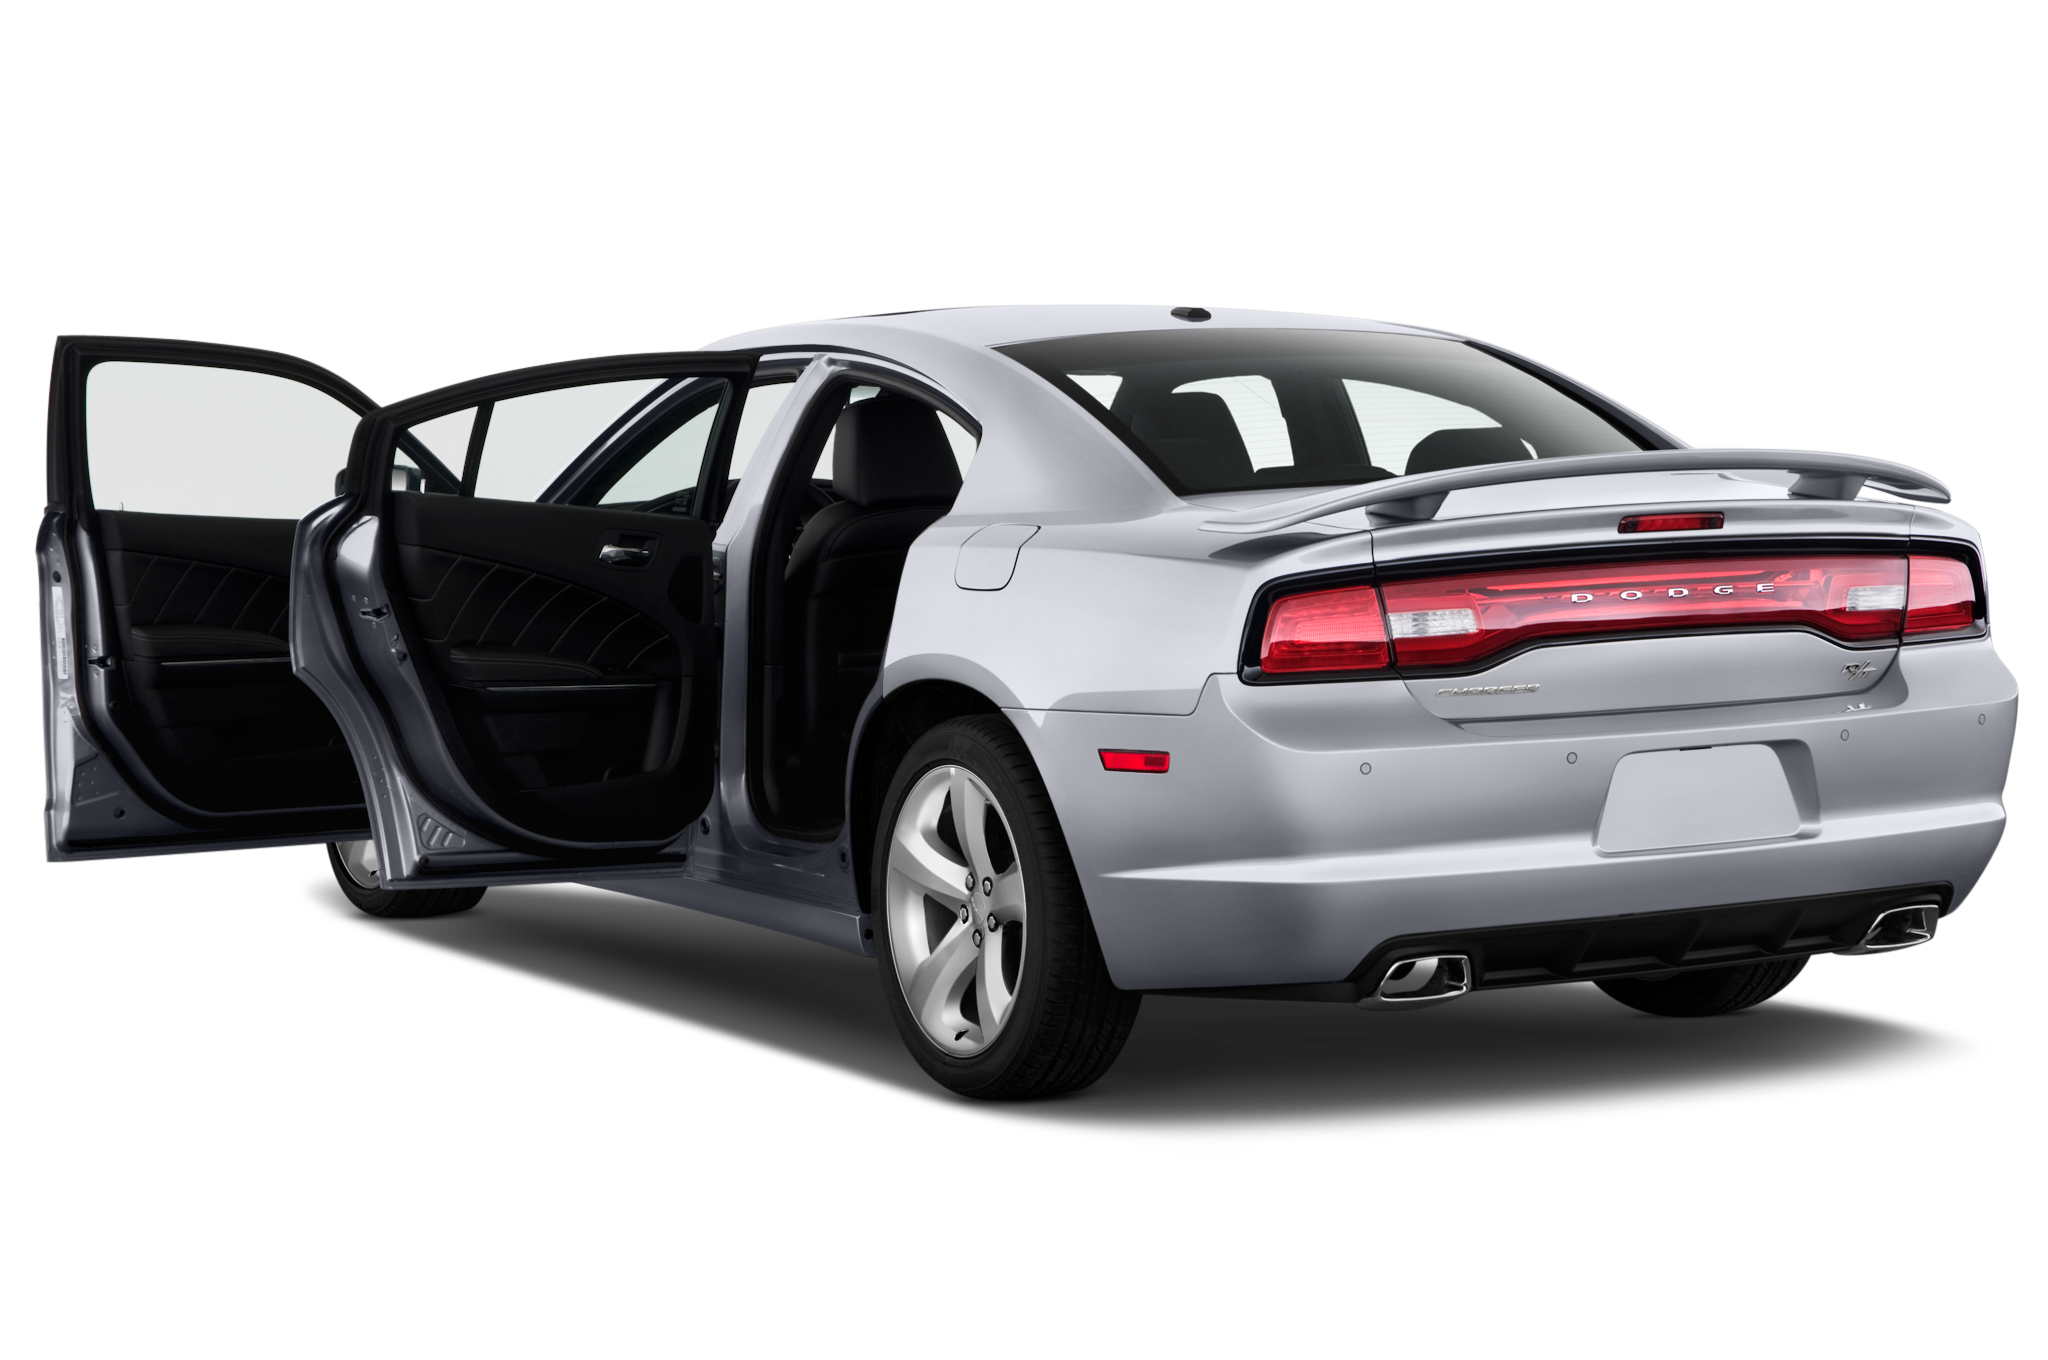 Dodge Charger R T Max Awd 2014 International Price Overview